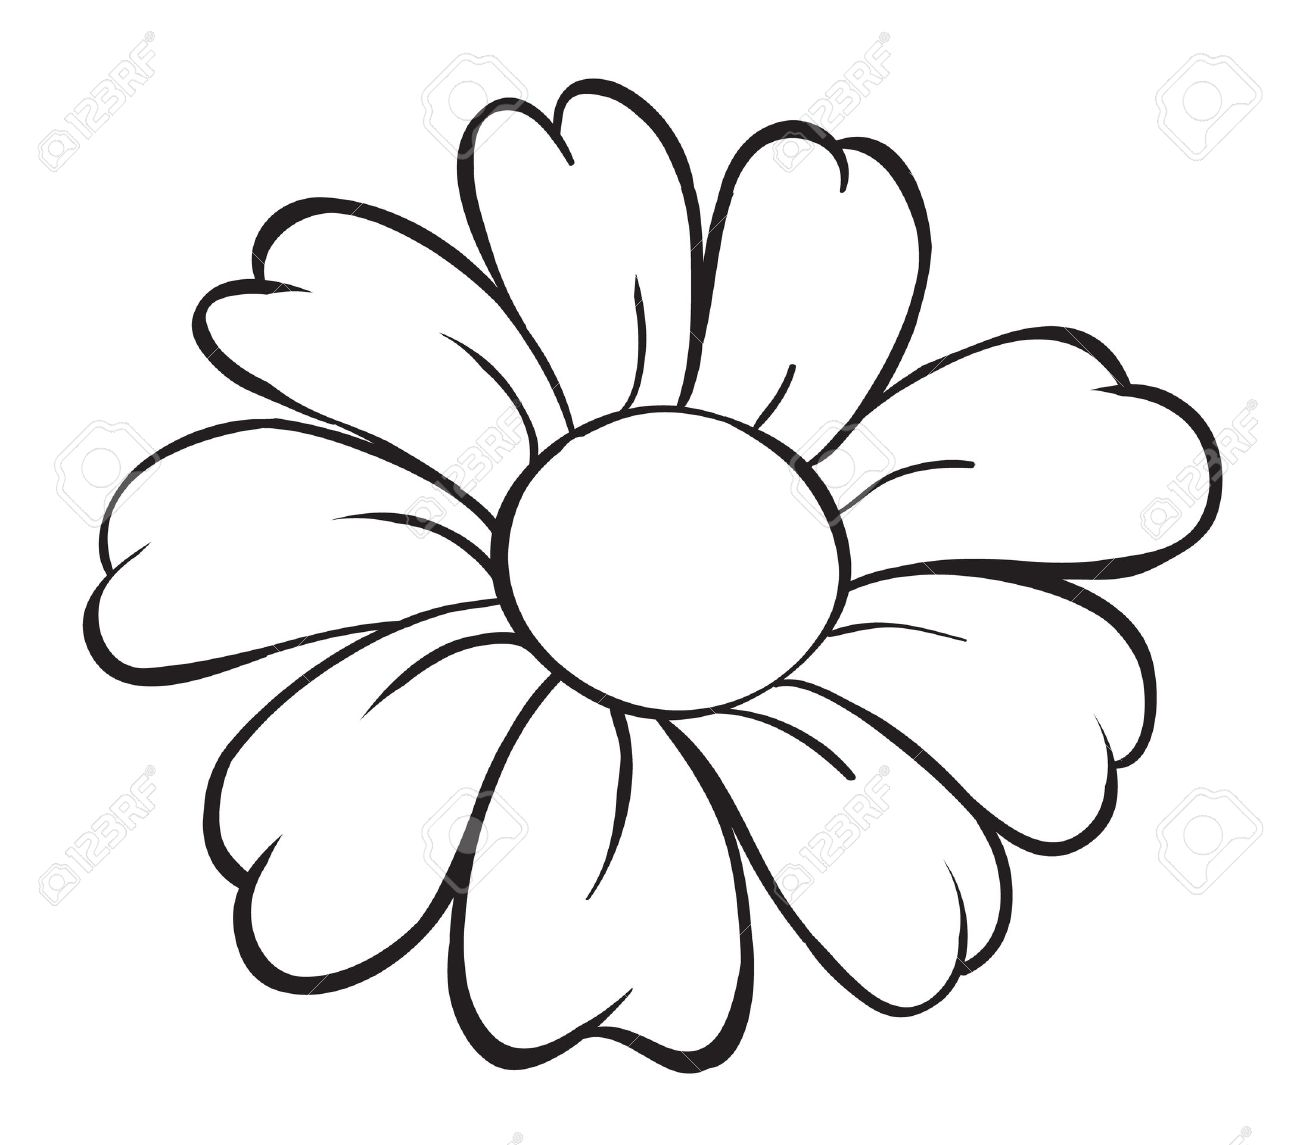 Flower black and white drawing at getdrawings free for 1300x1145 illustration of flower sketch on white background royalty free mightylinksfo